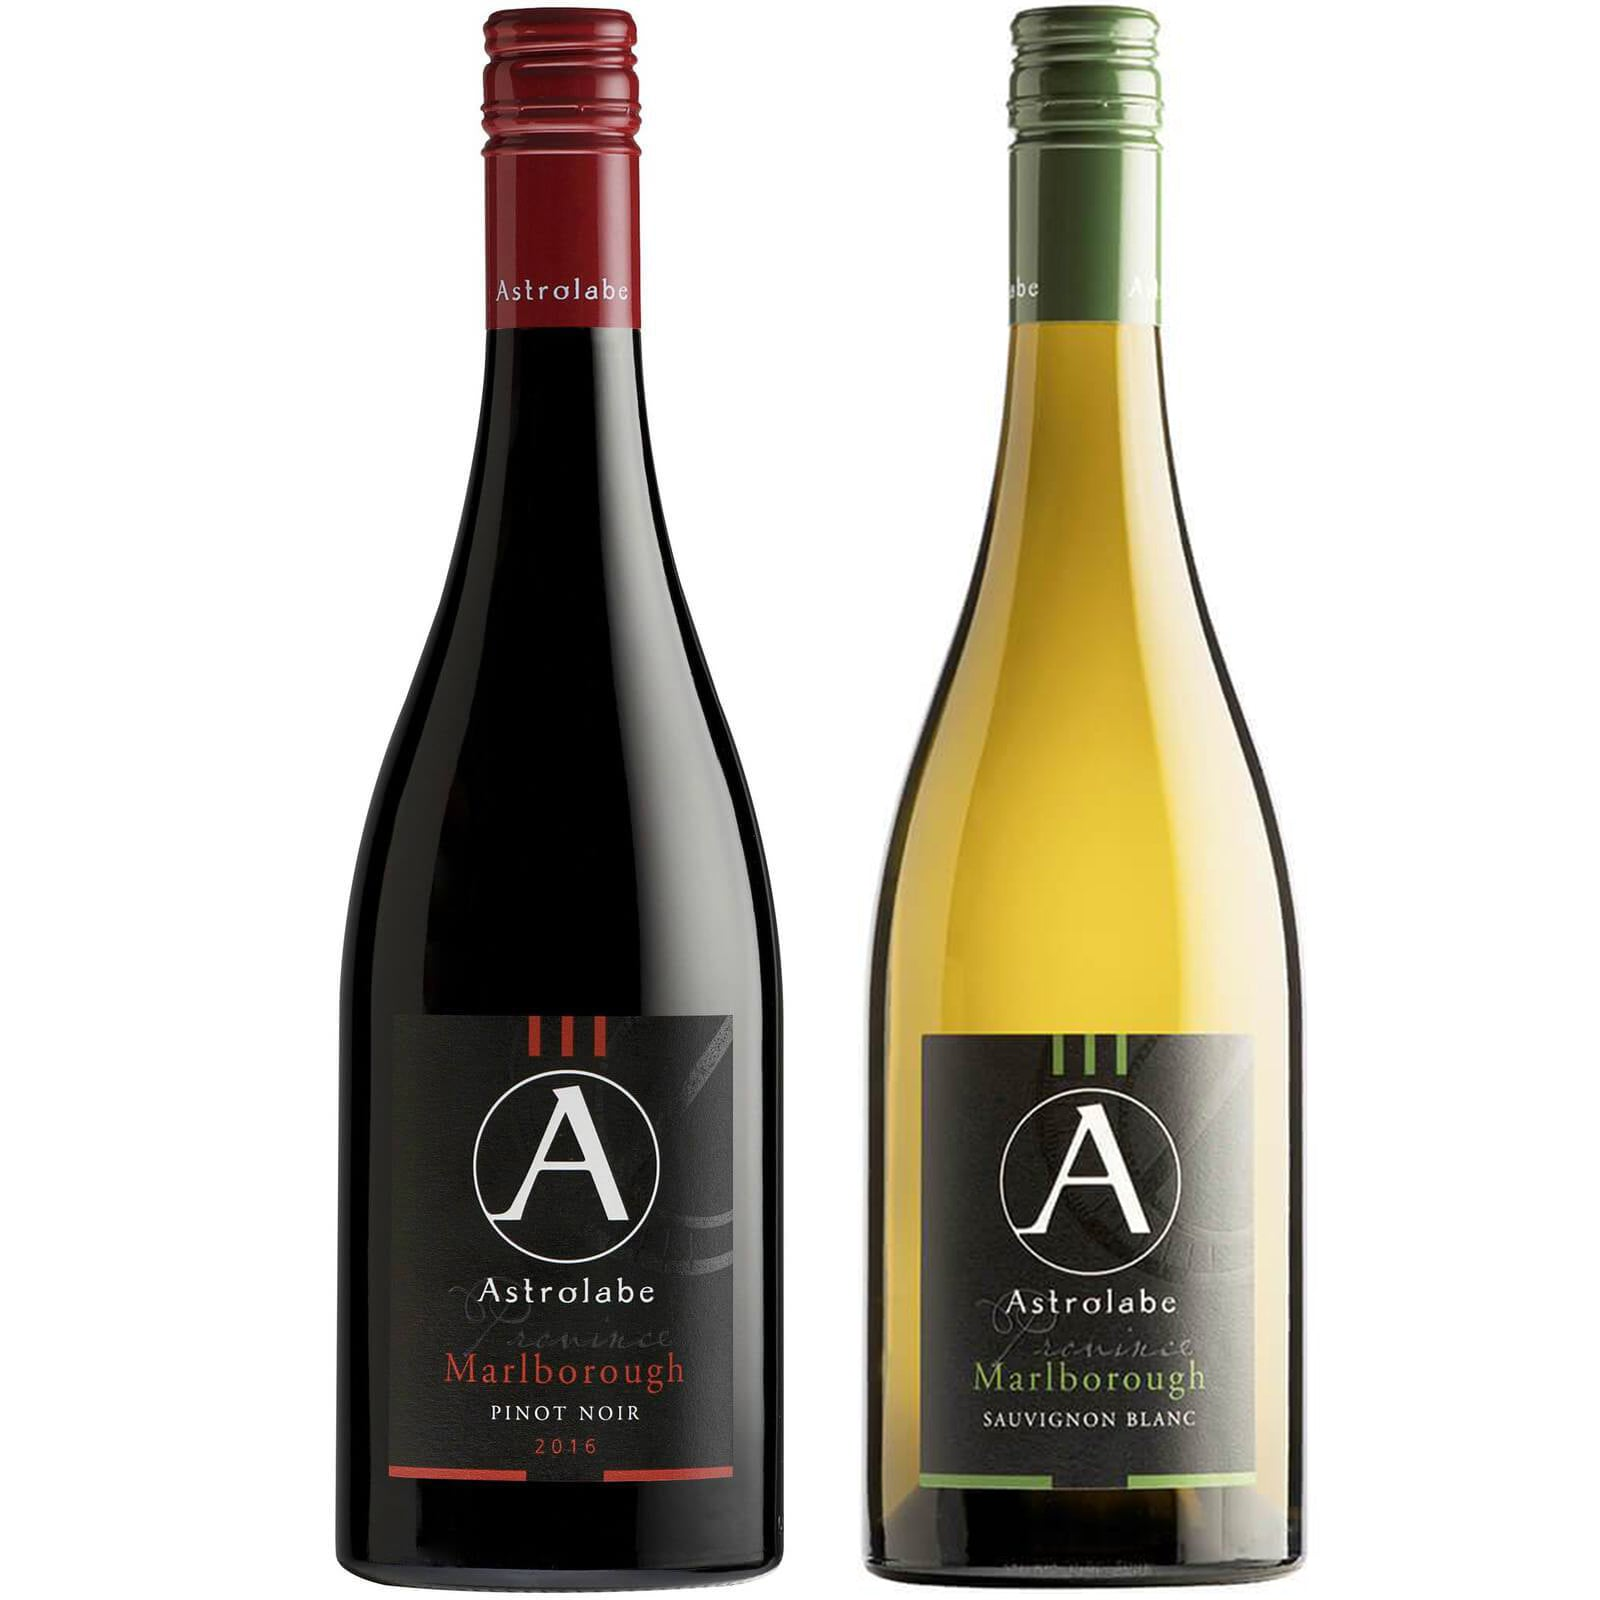 Astrolabe Marlborough Sauvignon Blanc 2018 & Astrolabe Marlborough Pinot Noir 2016